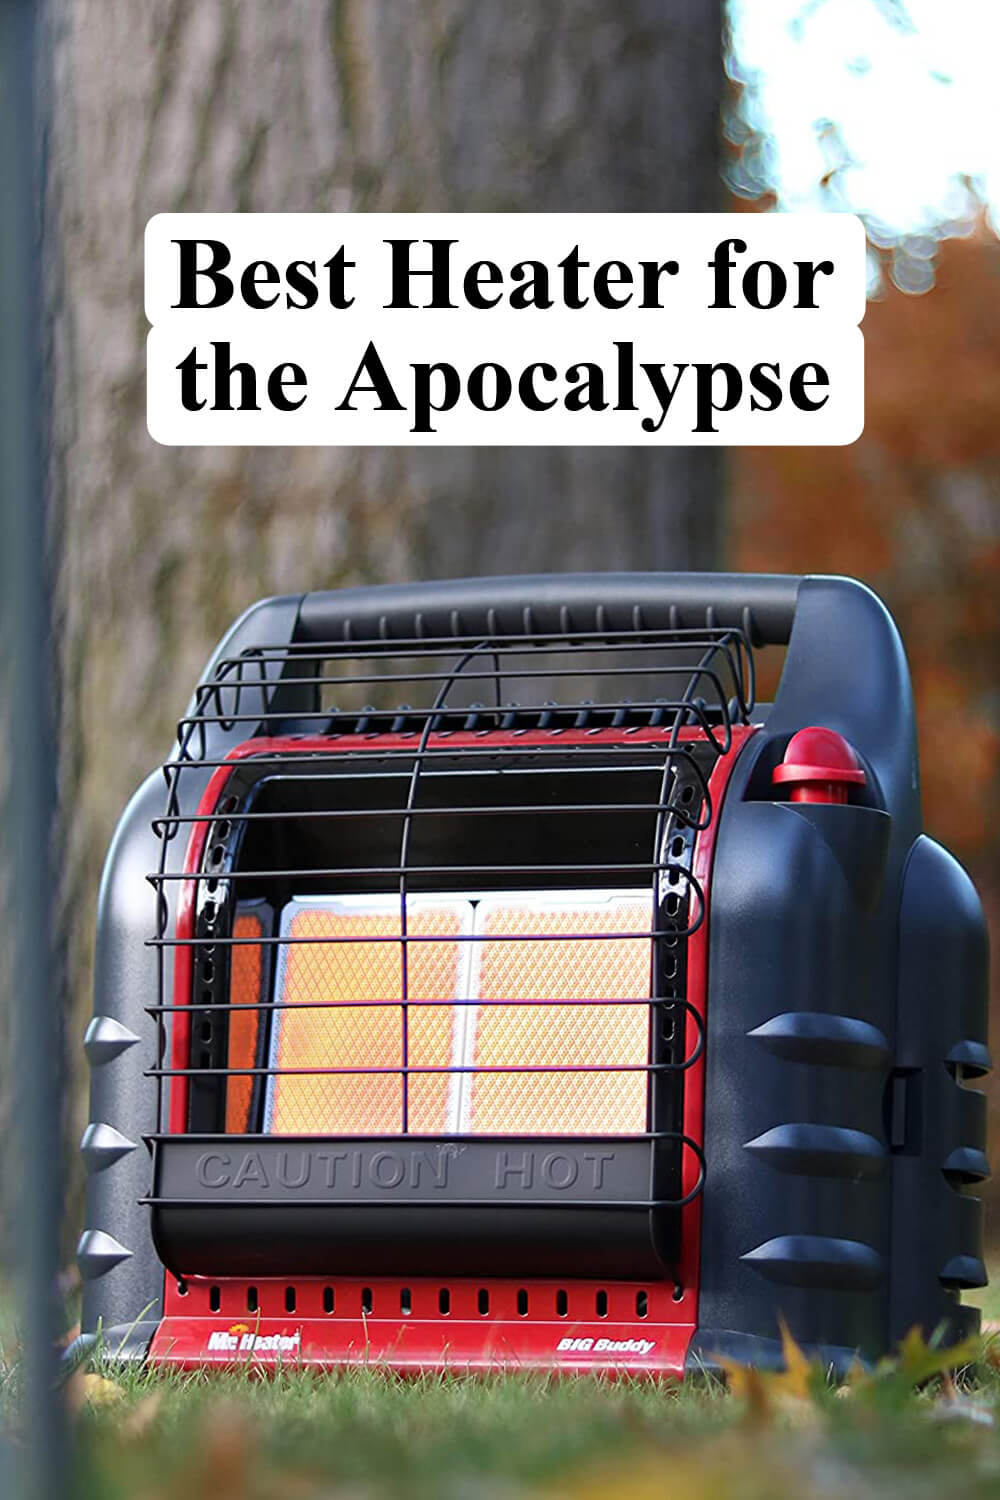 Best Heater for the Apocalypse